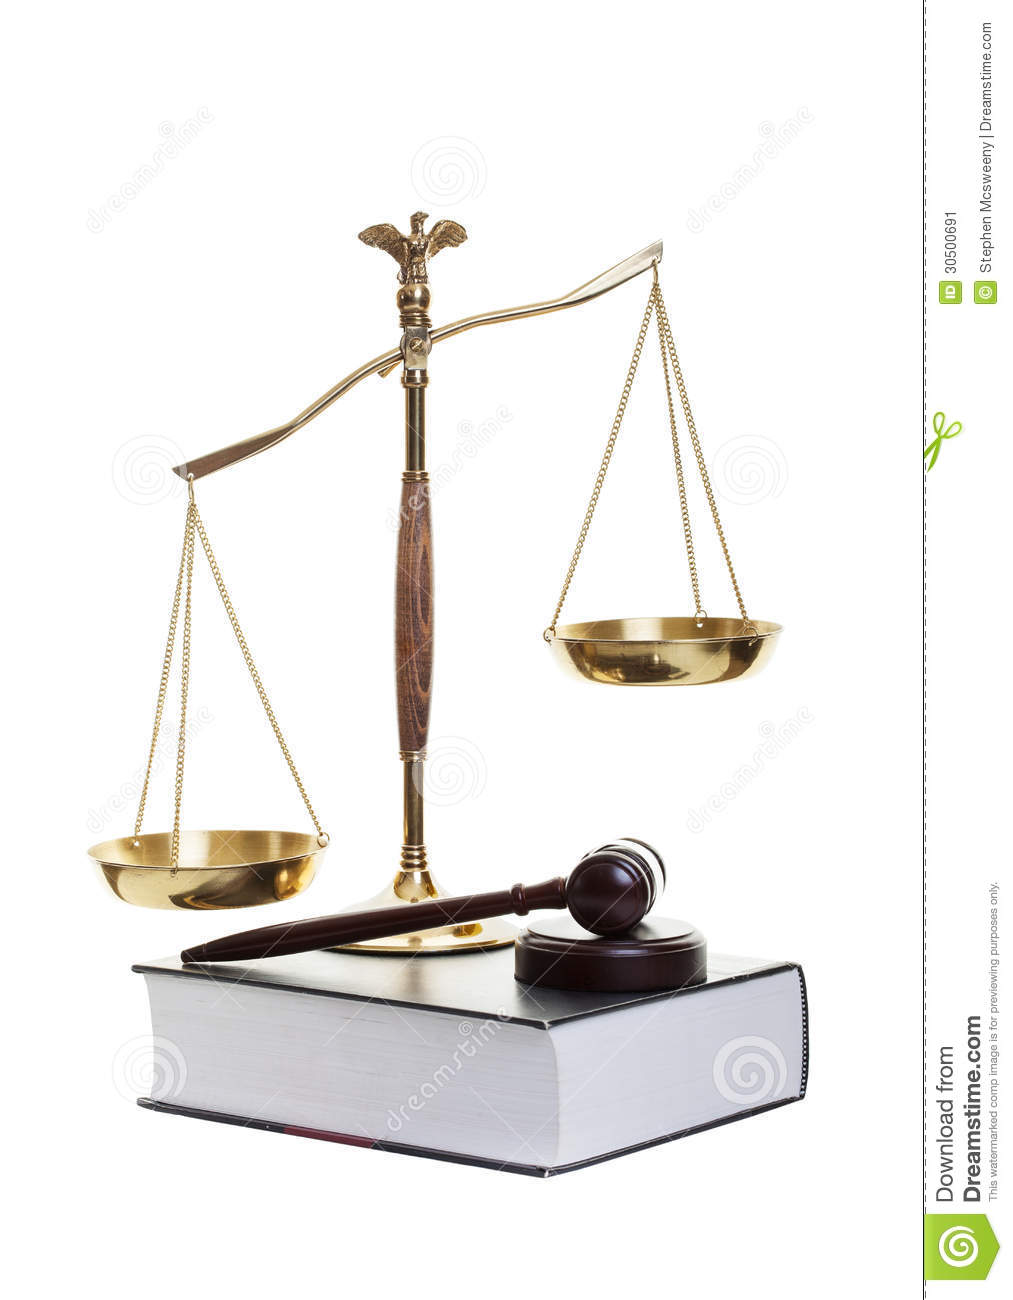 law scale and gavel - photo #22